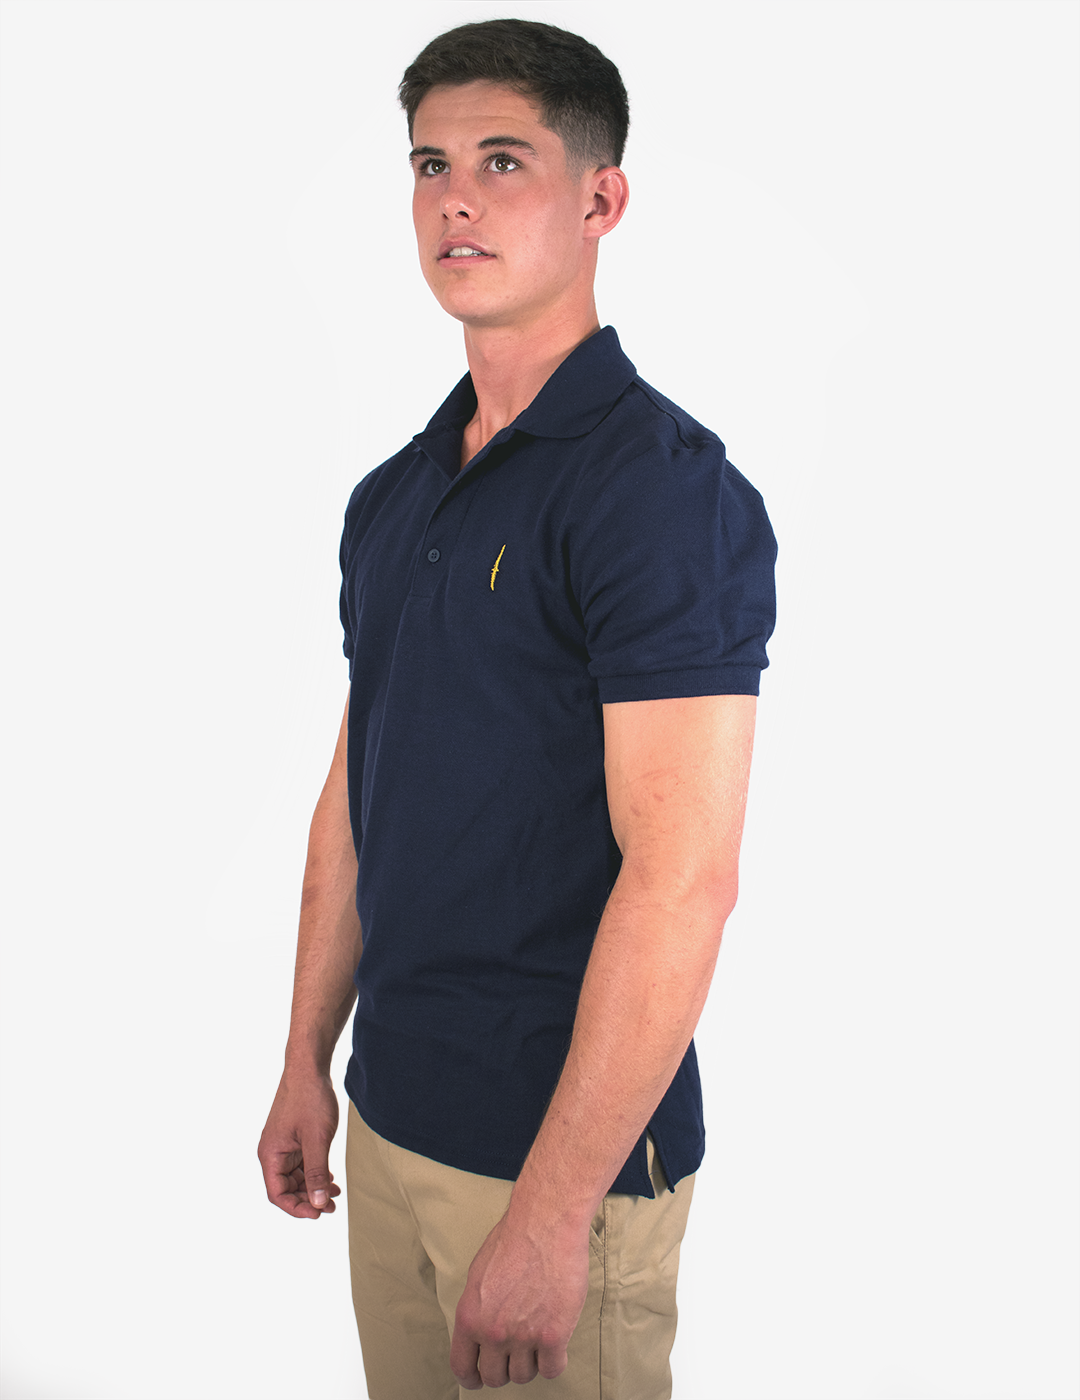 Commando Dagger Polo Shirt - Gold Embroidery